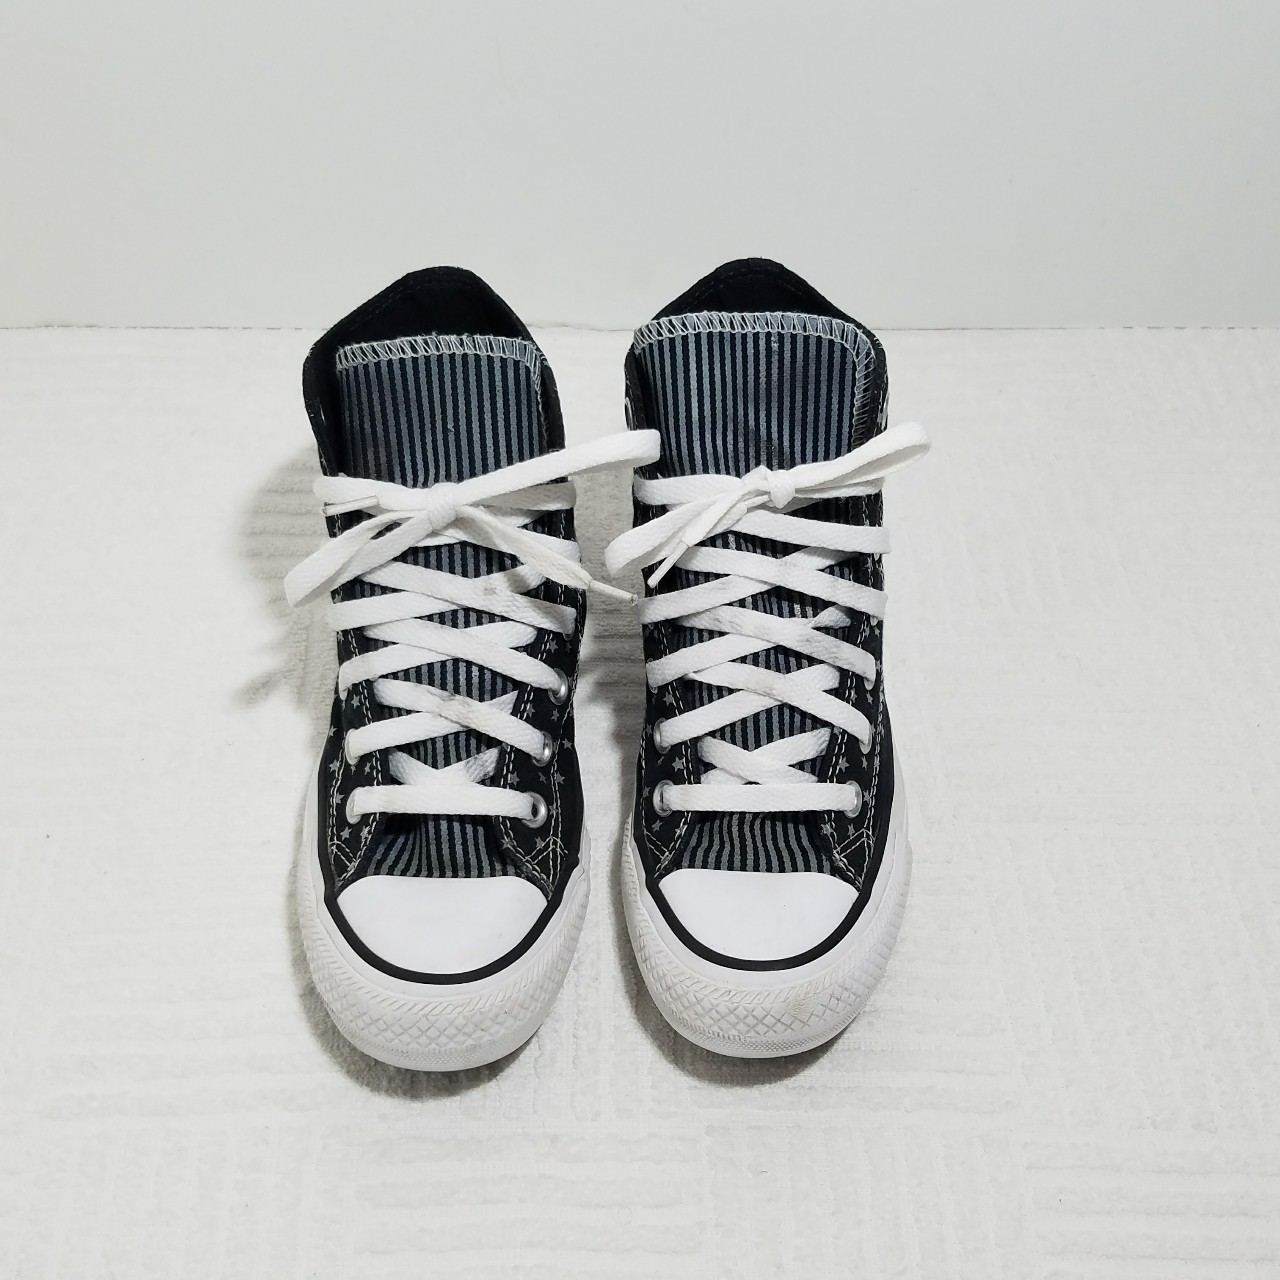 Converse All Star high tops black stars and stripes Depop